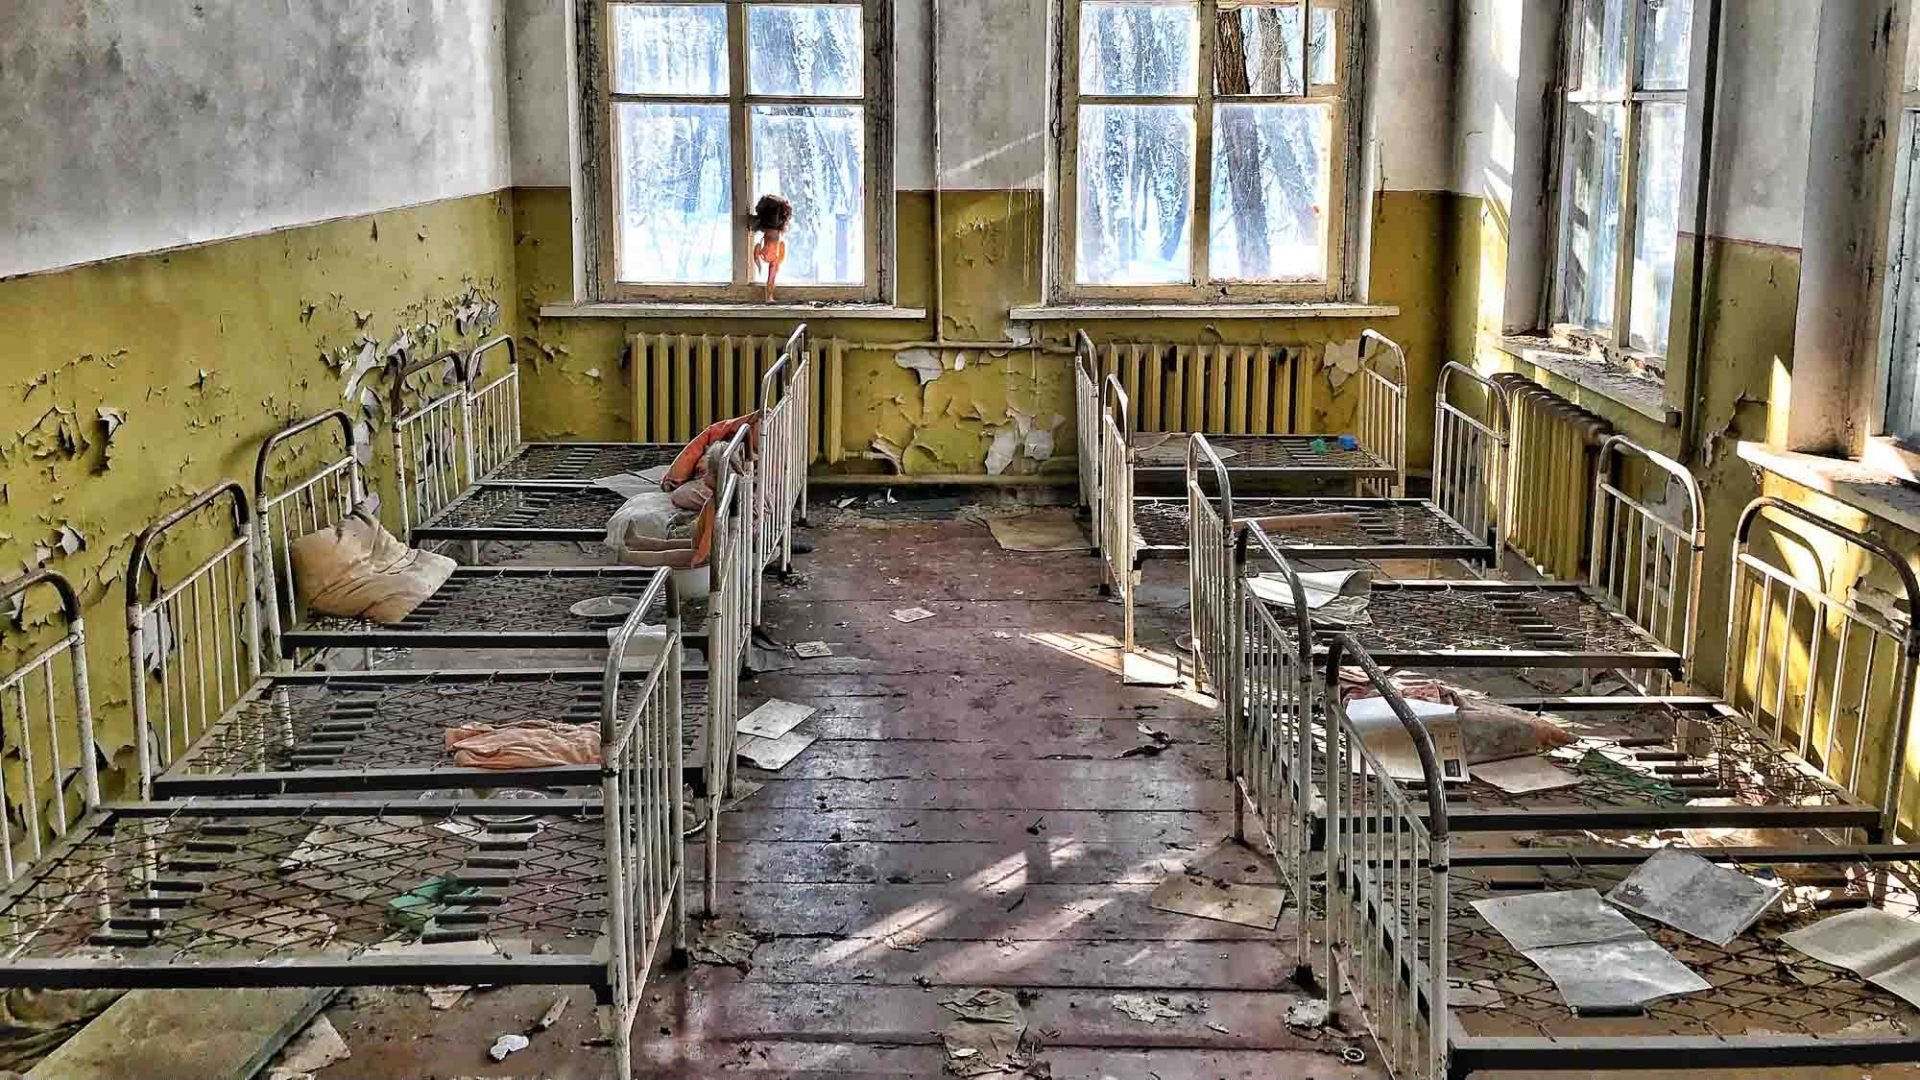 Life inside Chernobyl, one of the most polluted places on earth